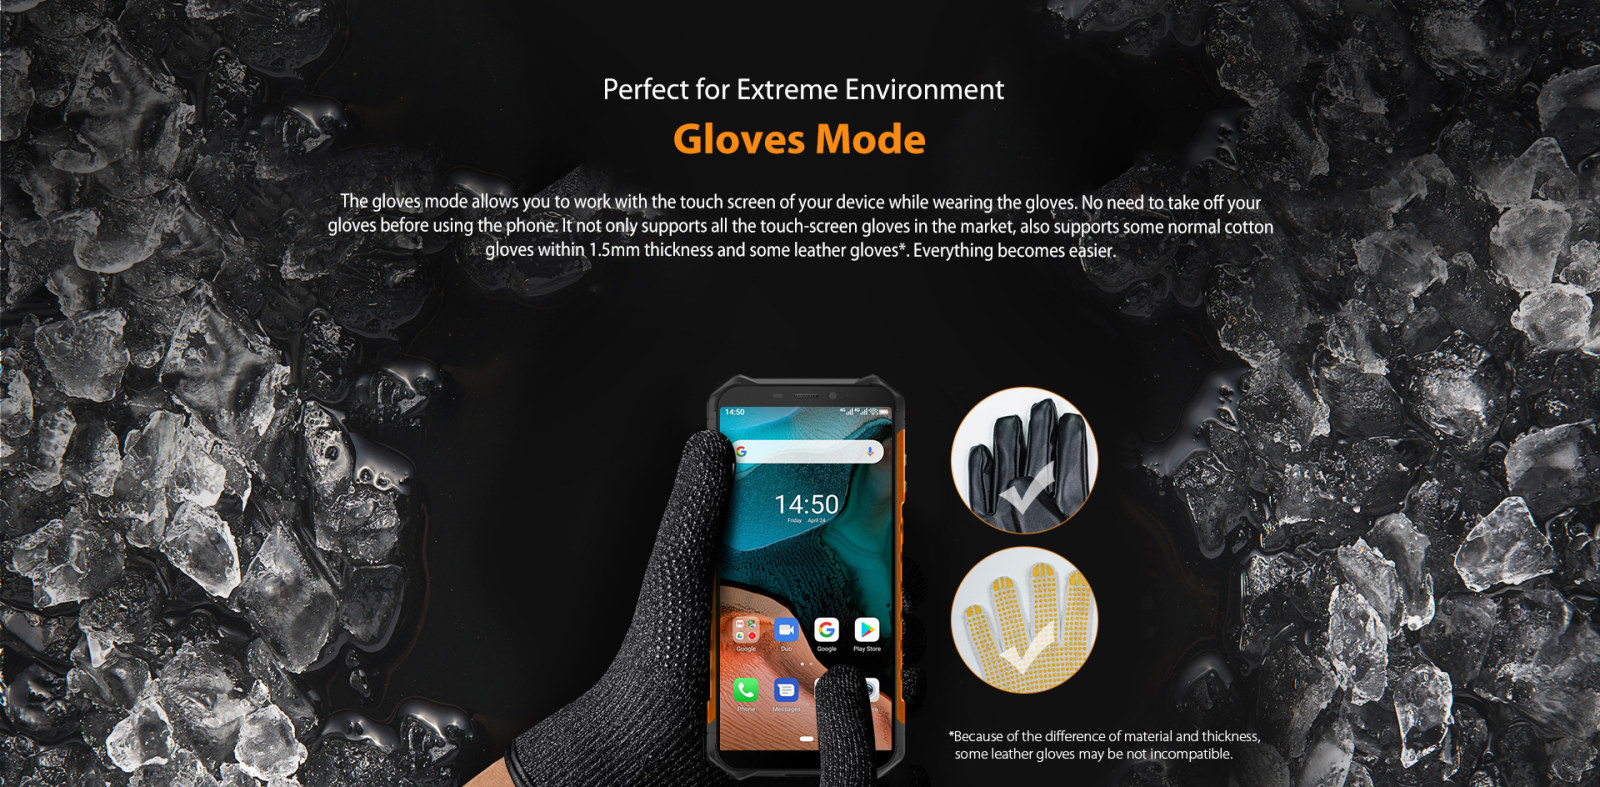 touchscreen works with gloves